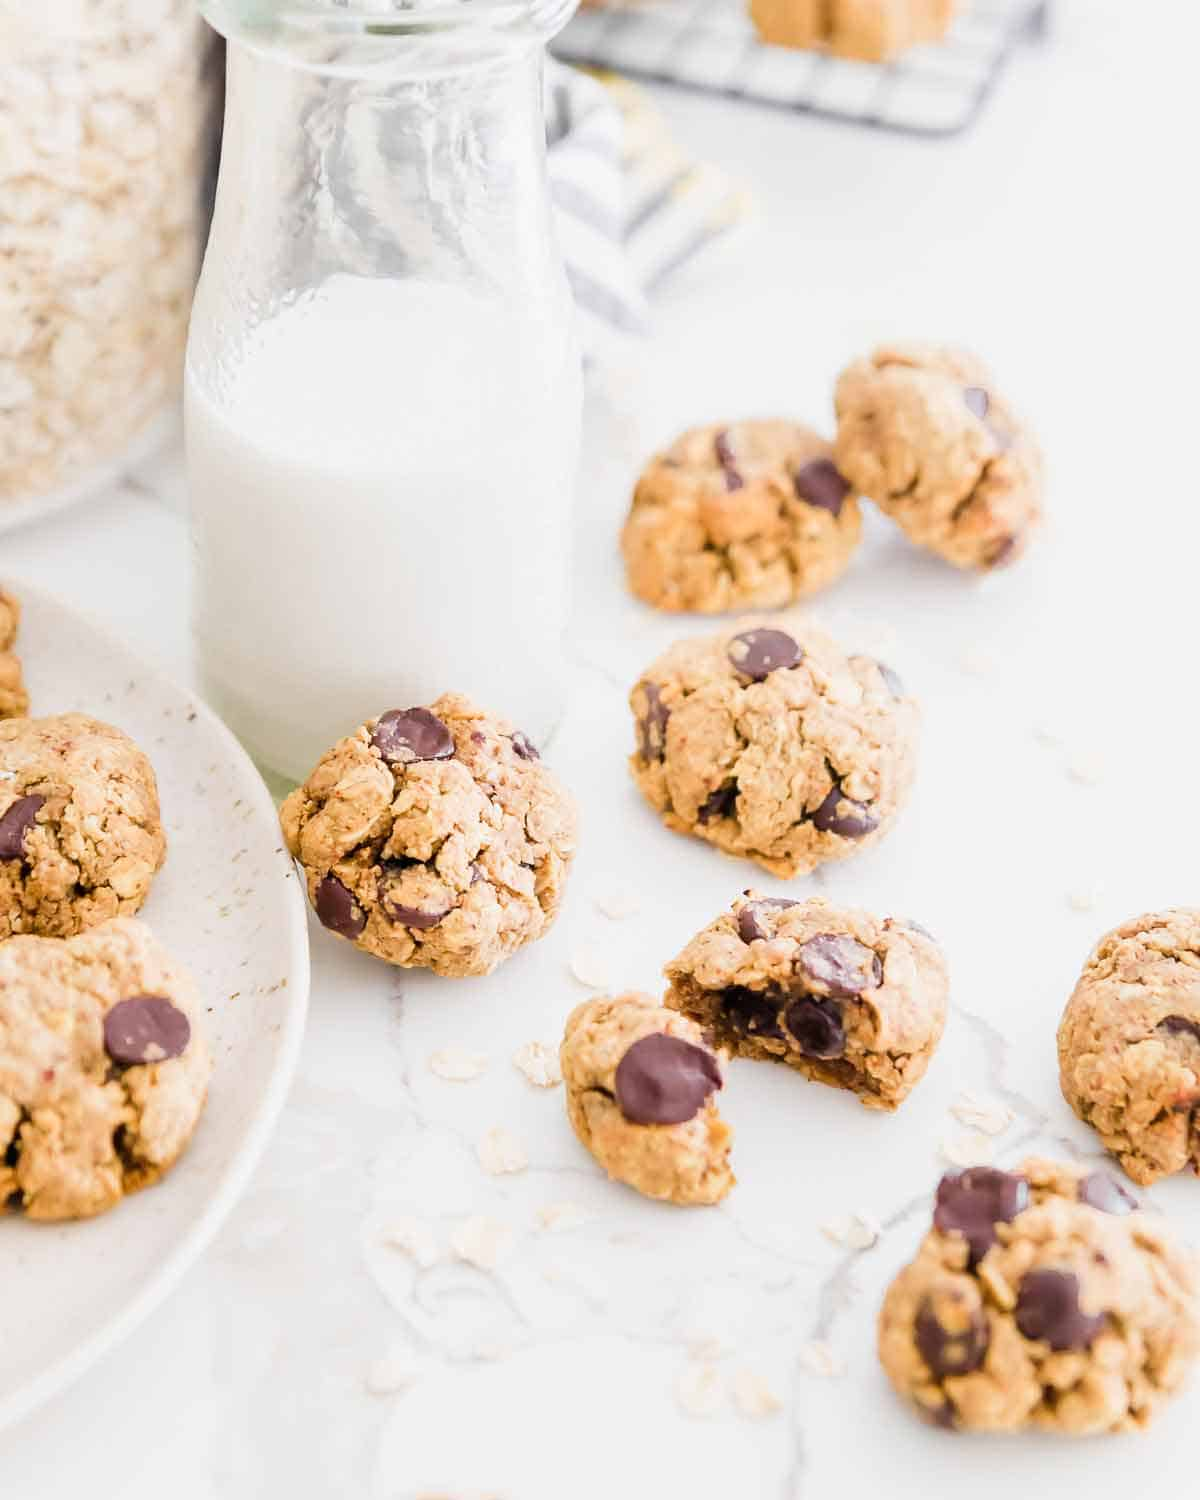 Use leftover almond pulp from homemade almond milk in these easy oatmeal chocolate chip cookies.